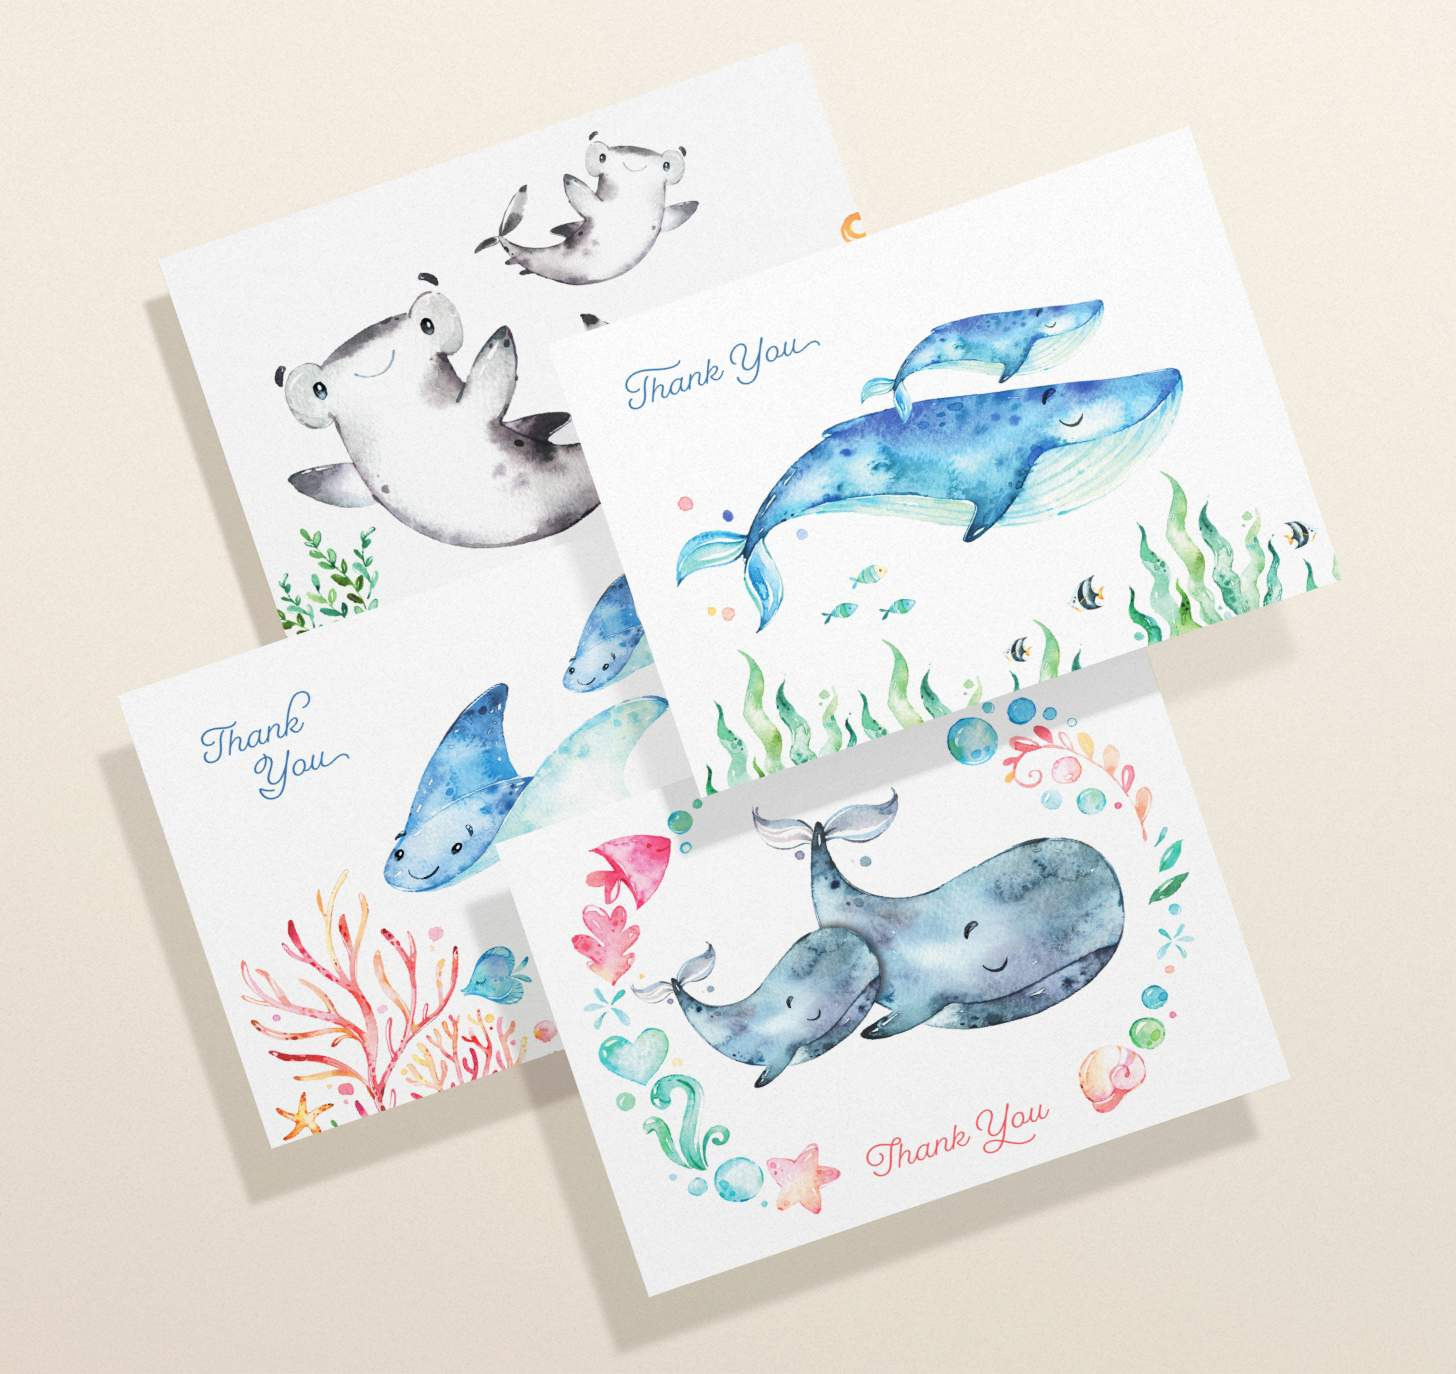 Four overlapping cards with mother and baby blue whale, gray whale, shark, and sting ray designs